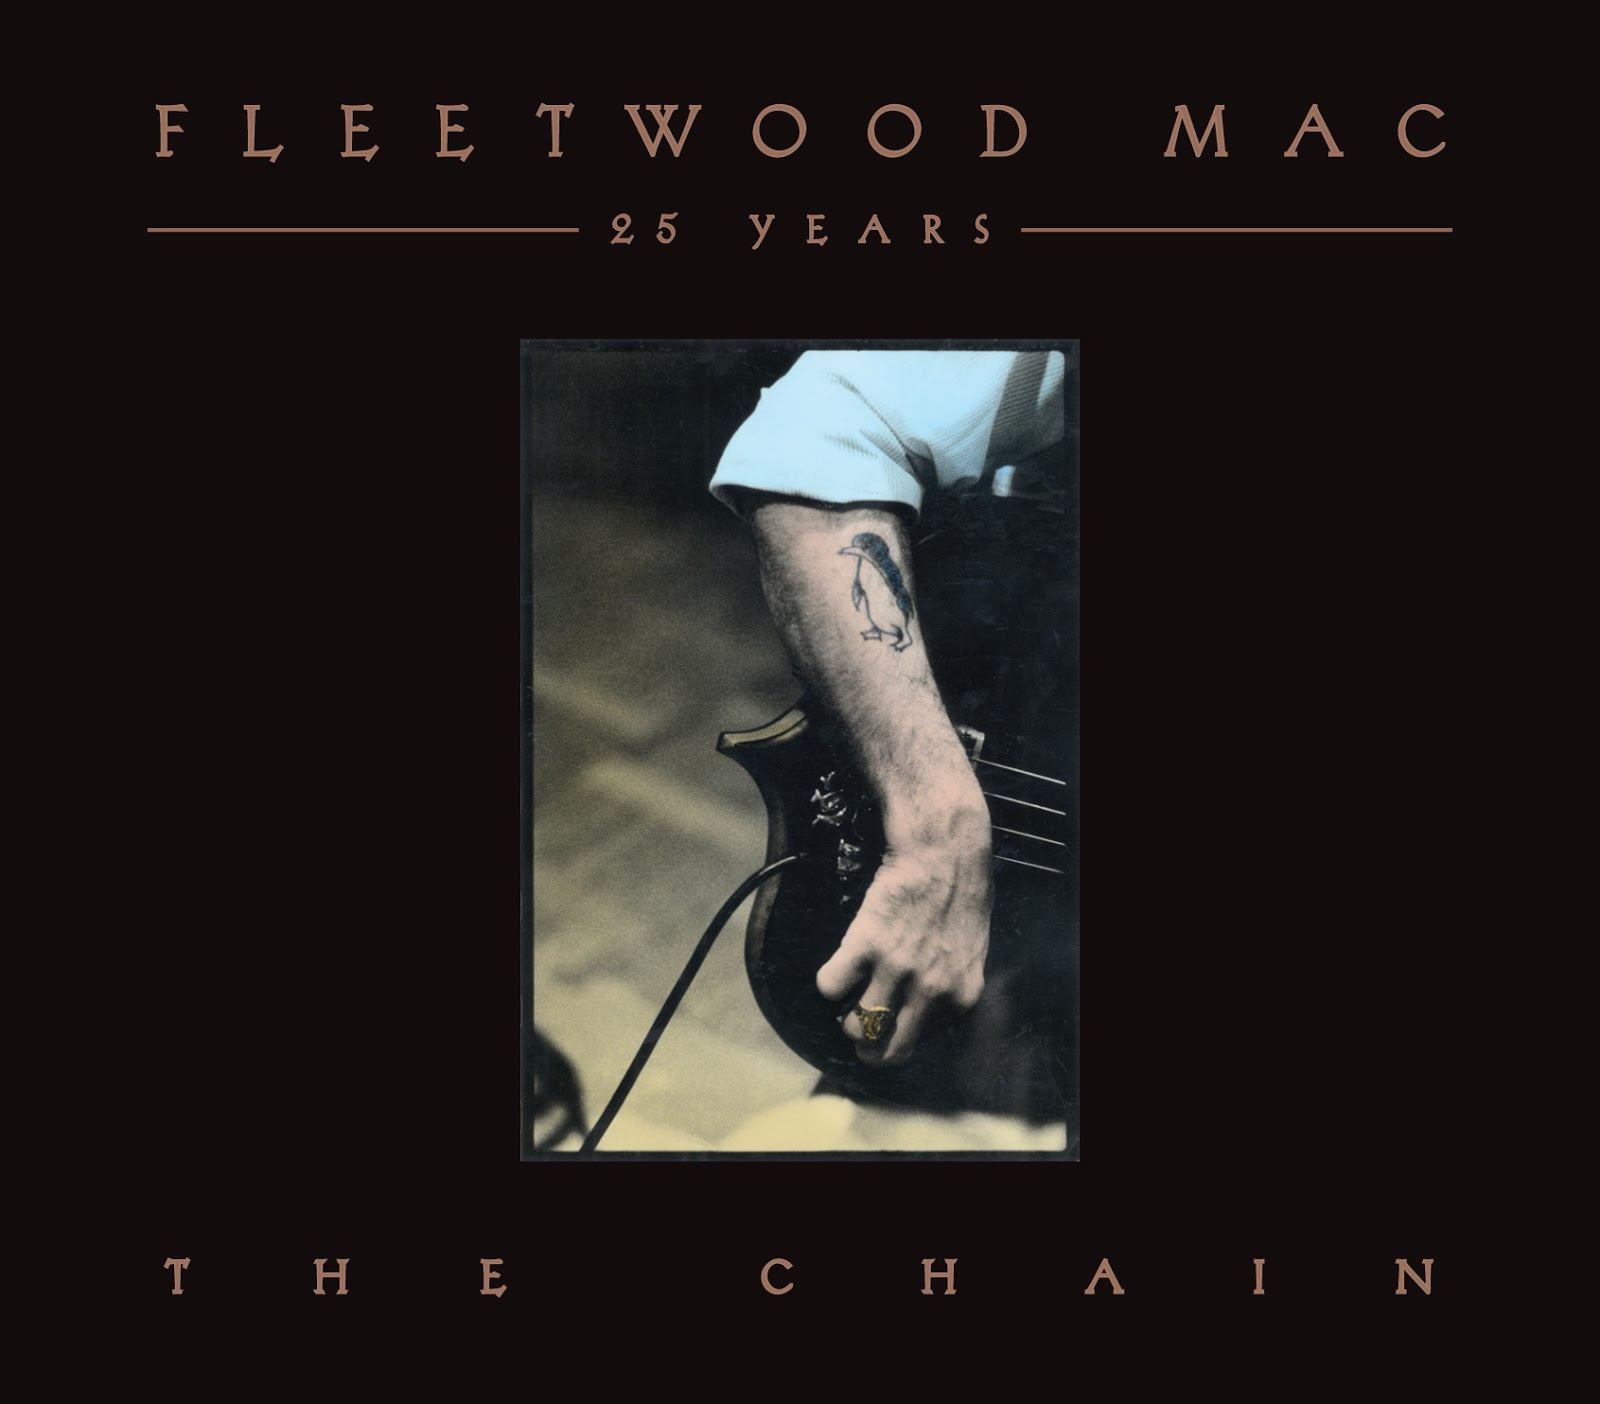 fleetwood mac news fleetwood mac have the no 1 album in new zealand this week 25 years the chain. Black Bedroom Furniture Sets. Home Design Ideas